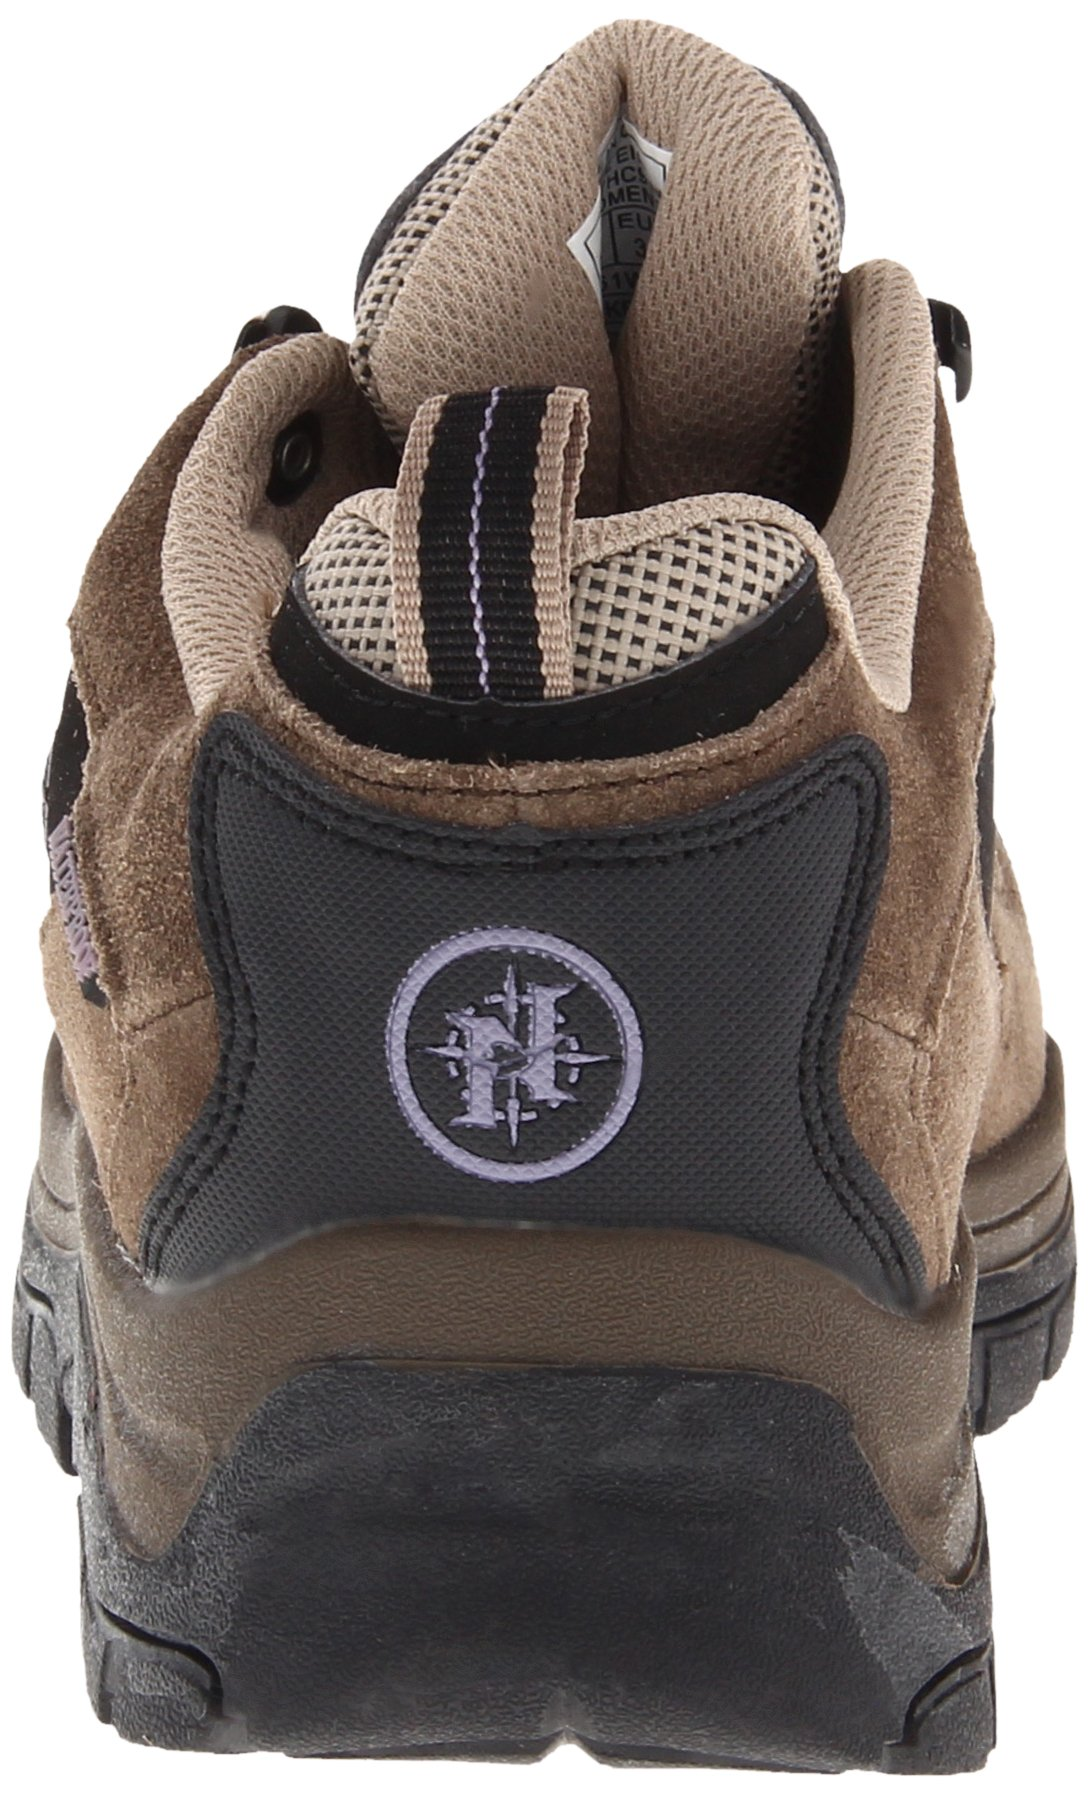 Nevados Women's Klondike Waterproof Low V4161W Hiking Boot,Dark Brown/Black/Taupe,9.5 M US by Nevados (Image #2)